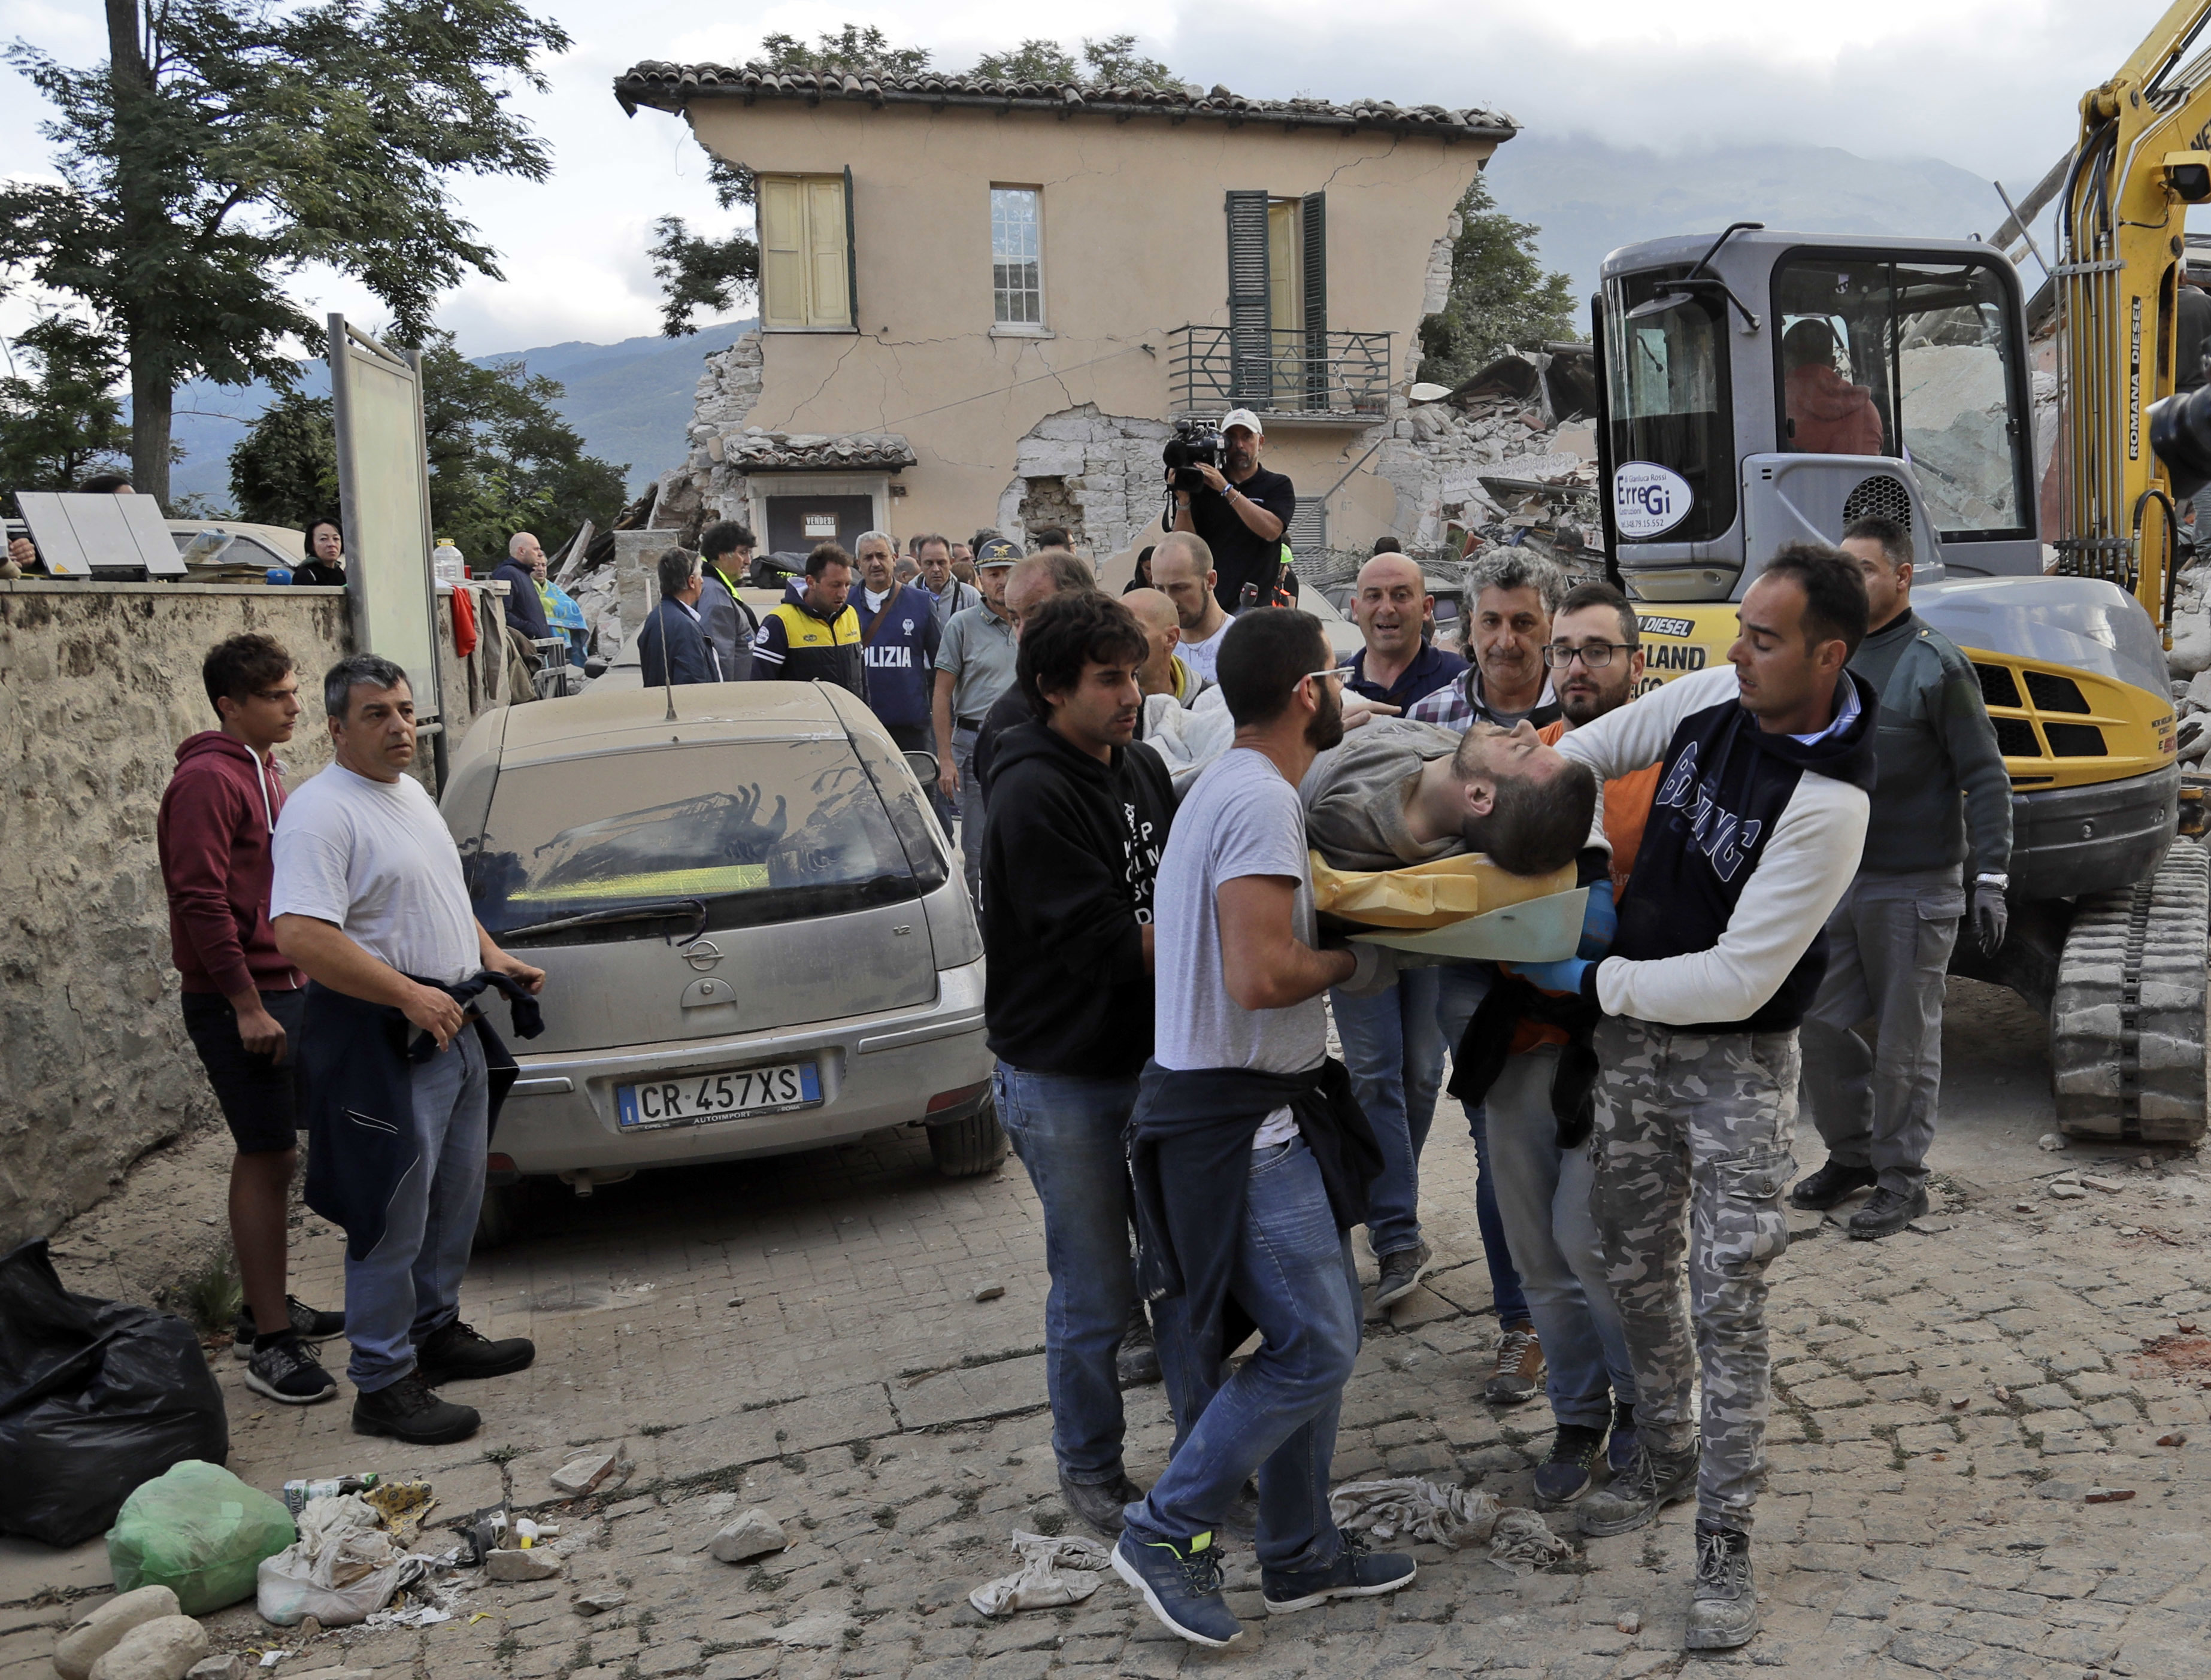 A man is carried out on a stretcher as a collapsed building is seen in the background following an earthquake, in Amatrice, Italy, Wednesday, Aug. 24, 2016.  The magnitude 6 quake struck at 3:36 a.m. (0136 GMT) and was felt across a broad swath of central Italy, including Rome where residents of the capital felt a long swaying followed by aftershocks. (AP Photo/Alessandra Tarantino)